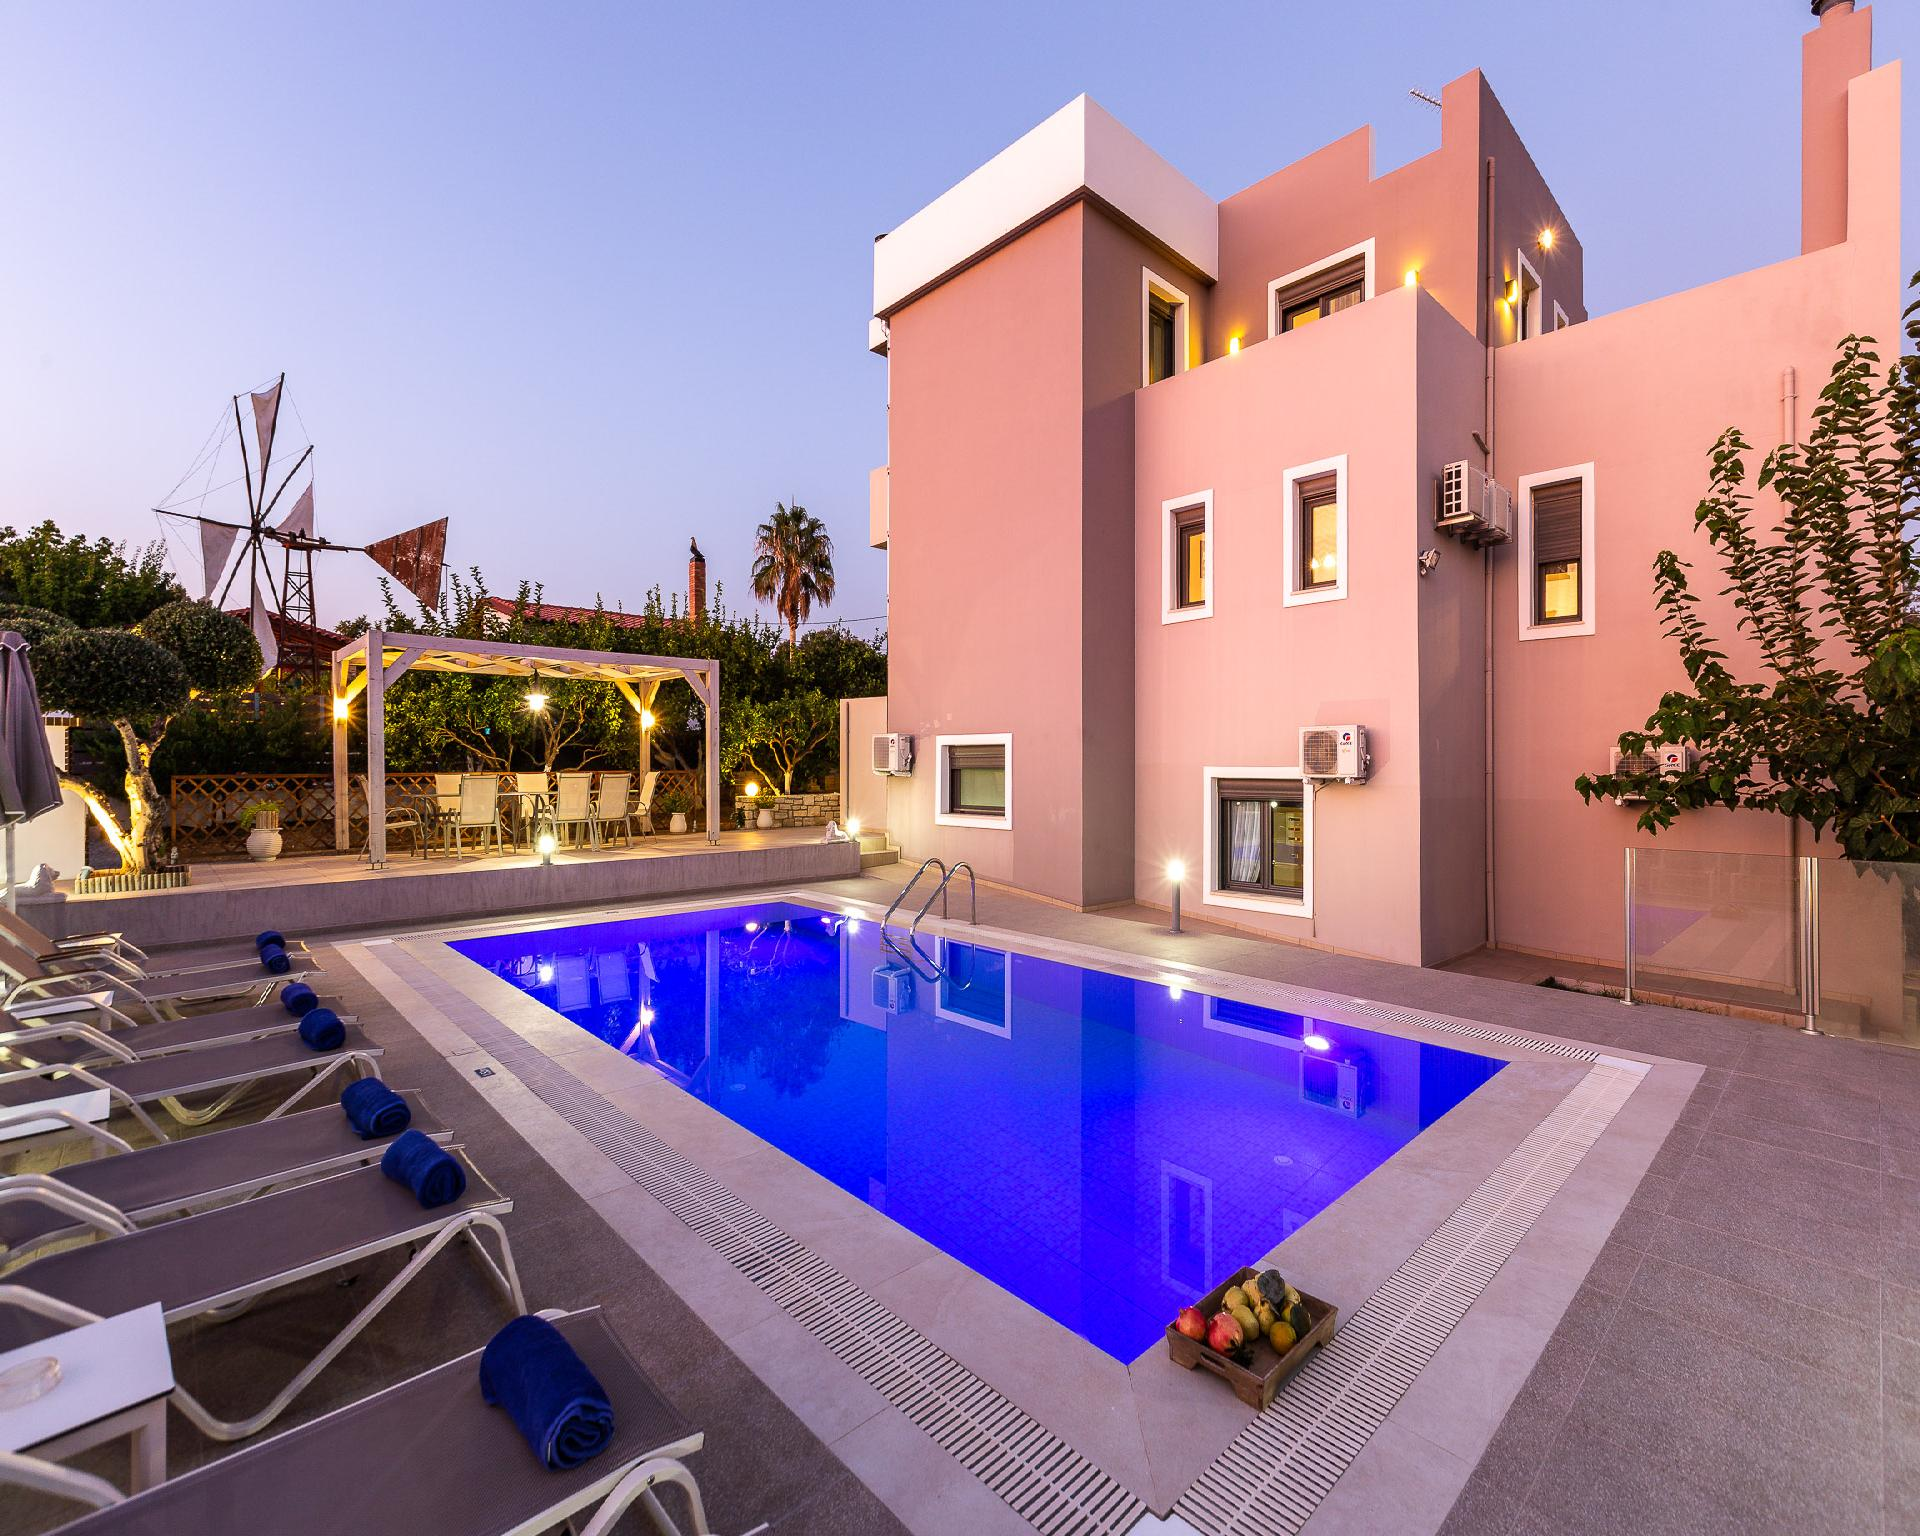 New to our range: We have recently added this acco   Kreta Nord